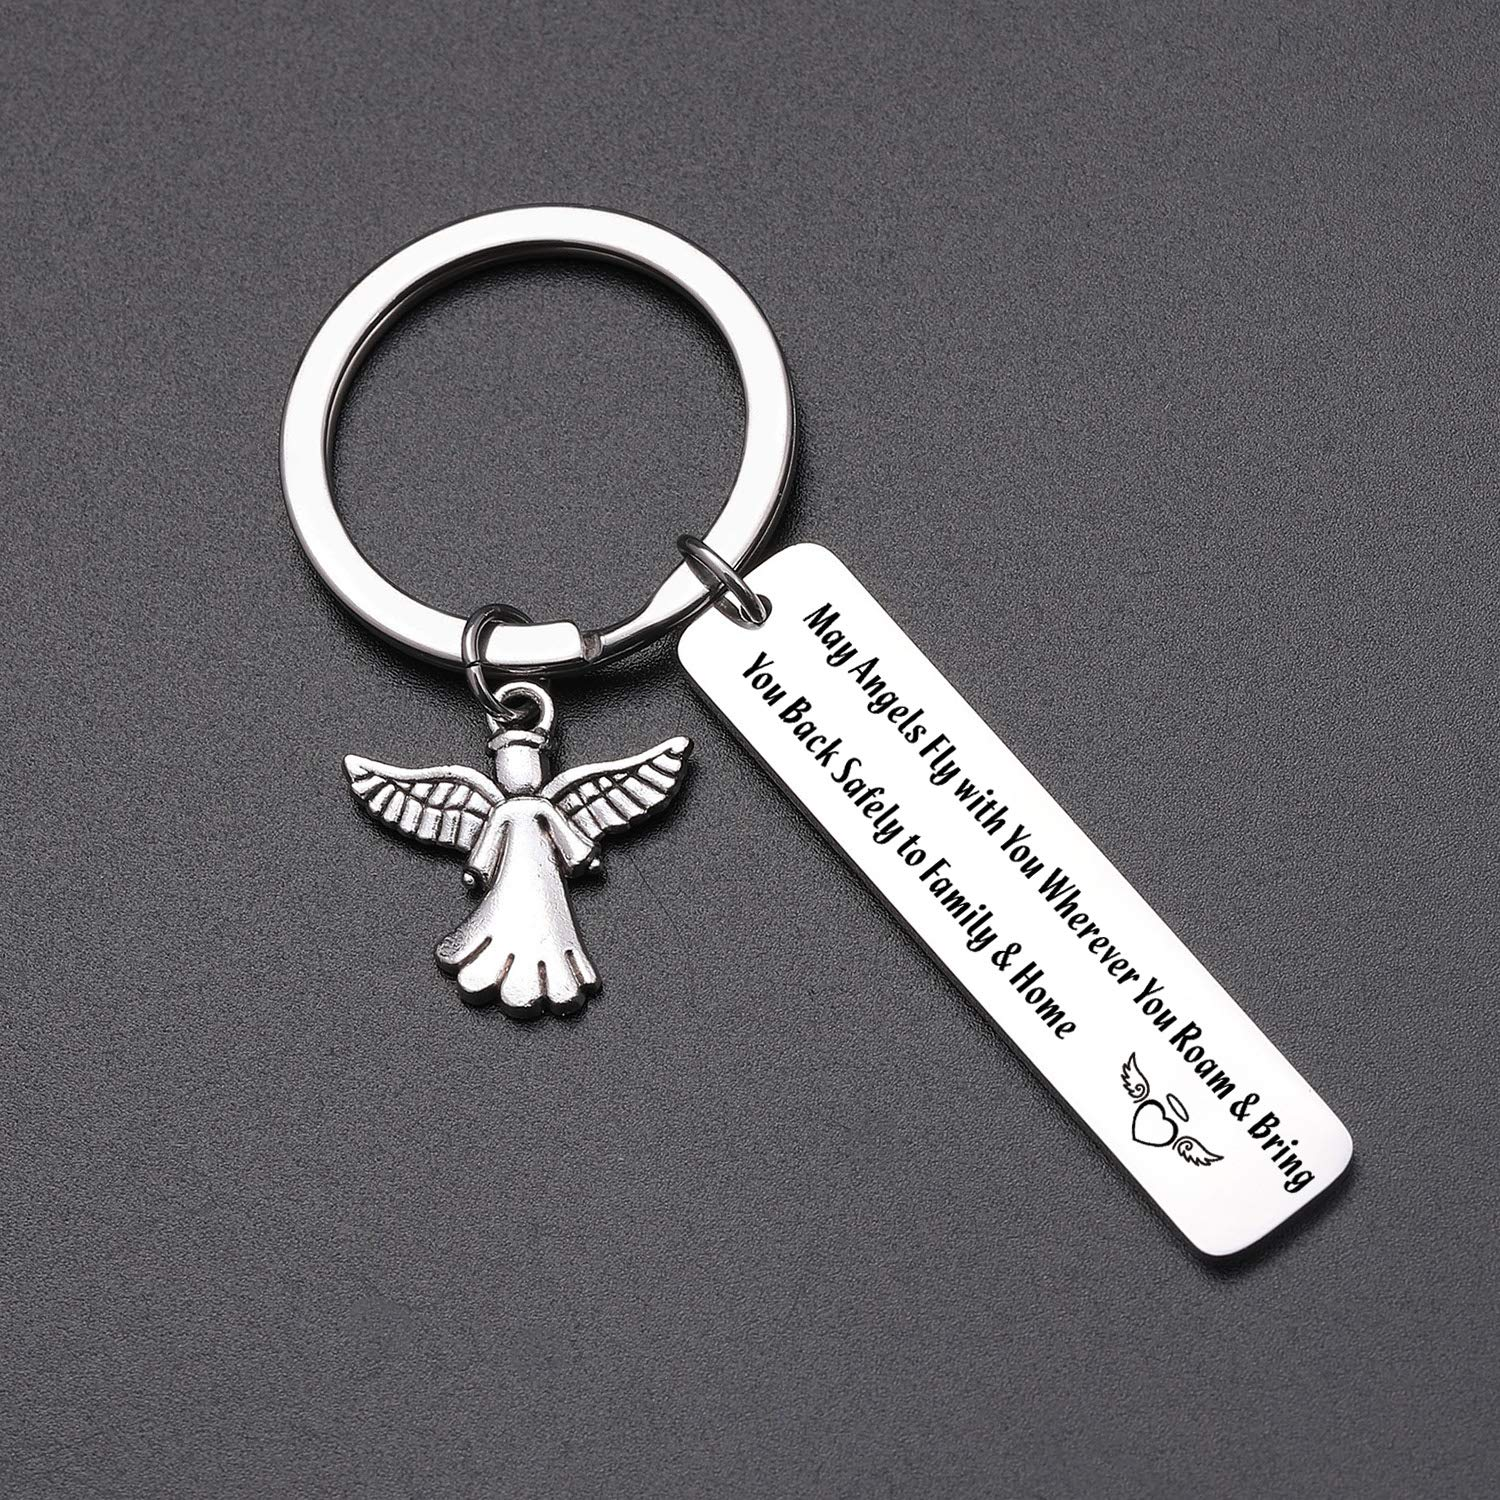 May Angels Fly with You Wherever You Roam Bring You Back Safely to Family and Home Keychain Gift for family friends